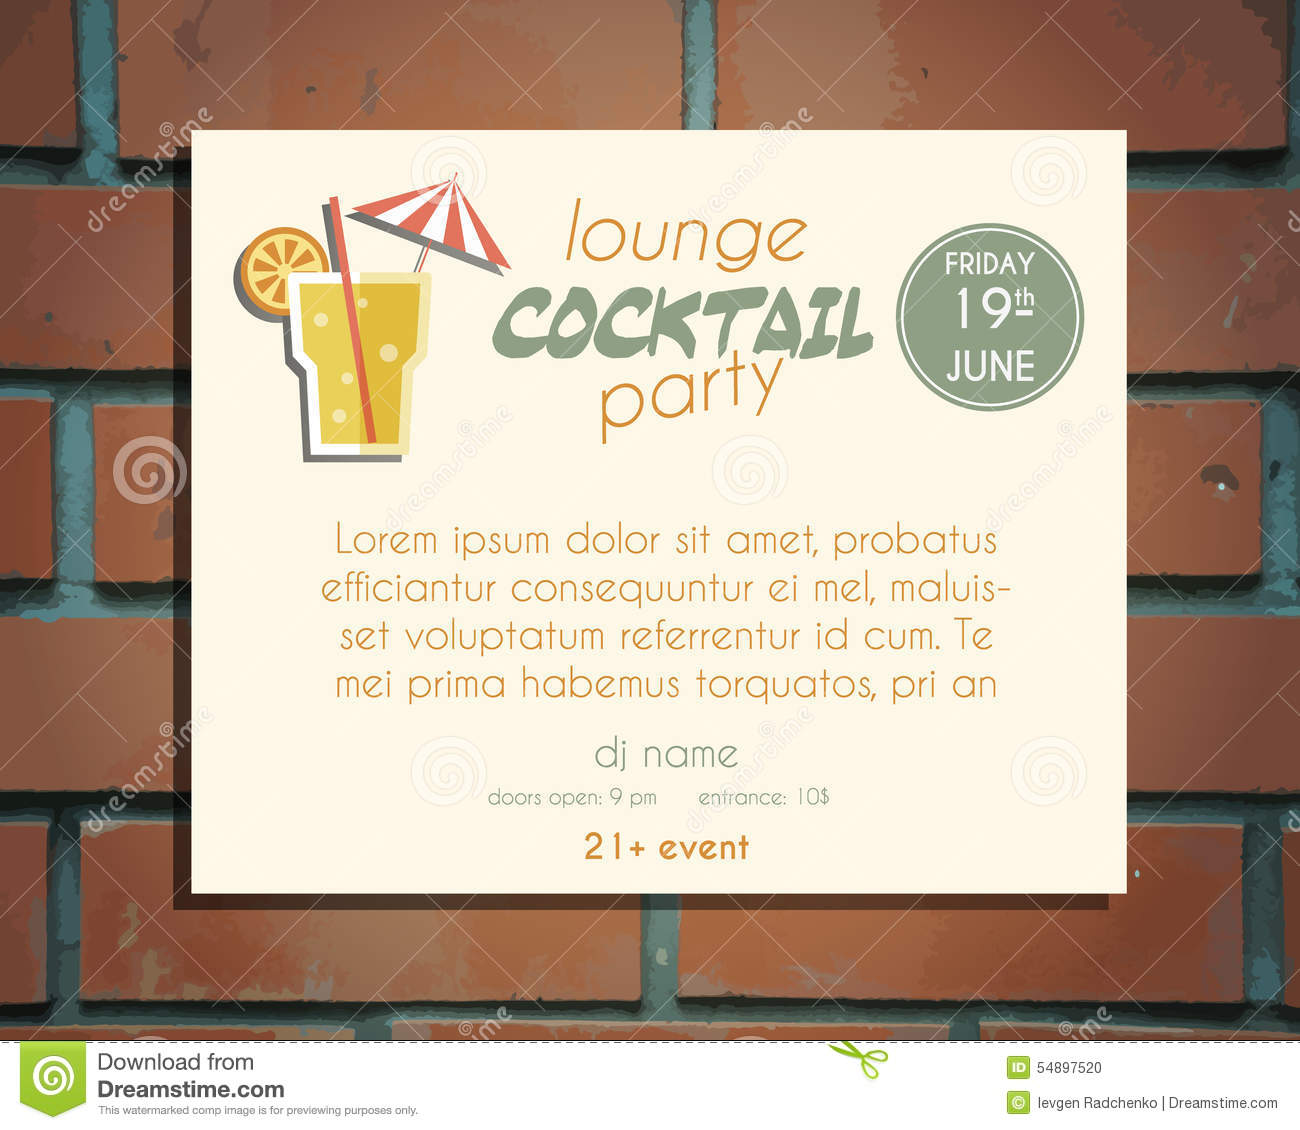 cocktail party invitation template best psd cocktail party cocktail party poster invitation template screw driver cocktail